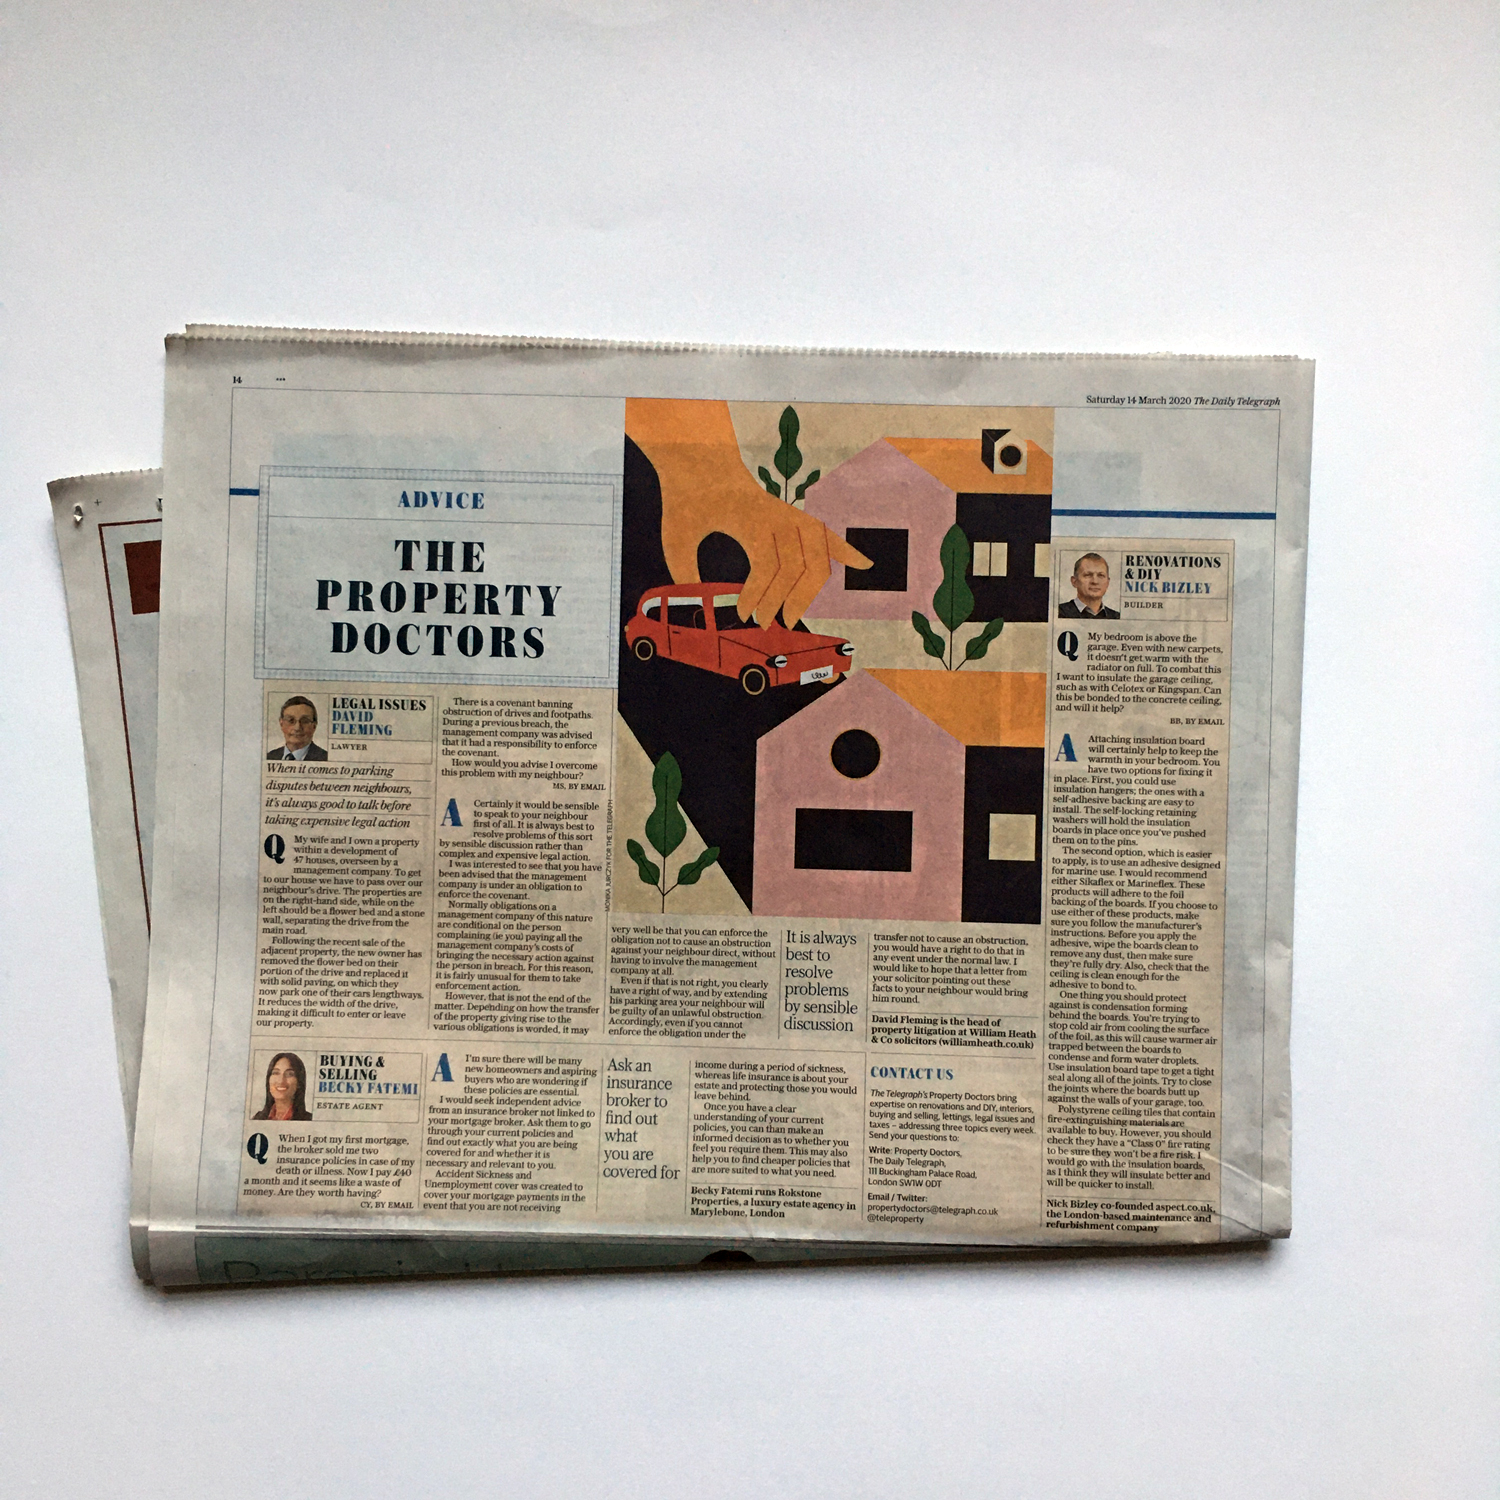 Photograph on The Telegraph newspaper with an editorial illustration by Monsie Monika Jurczyk